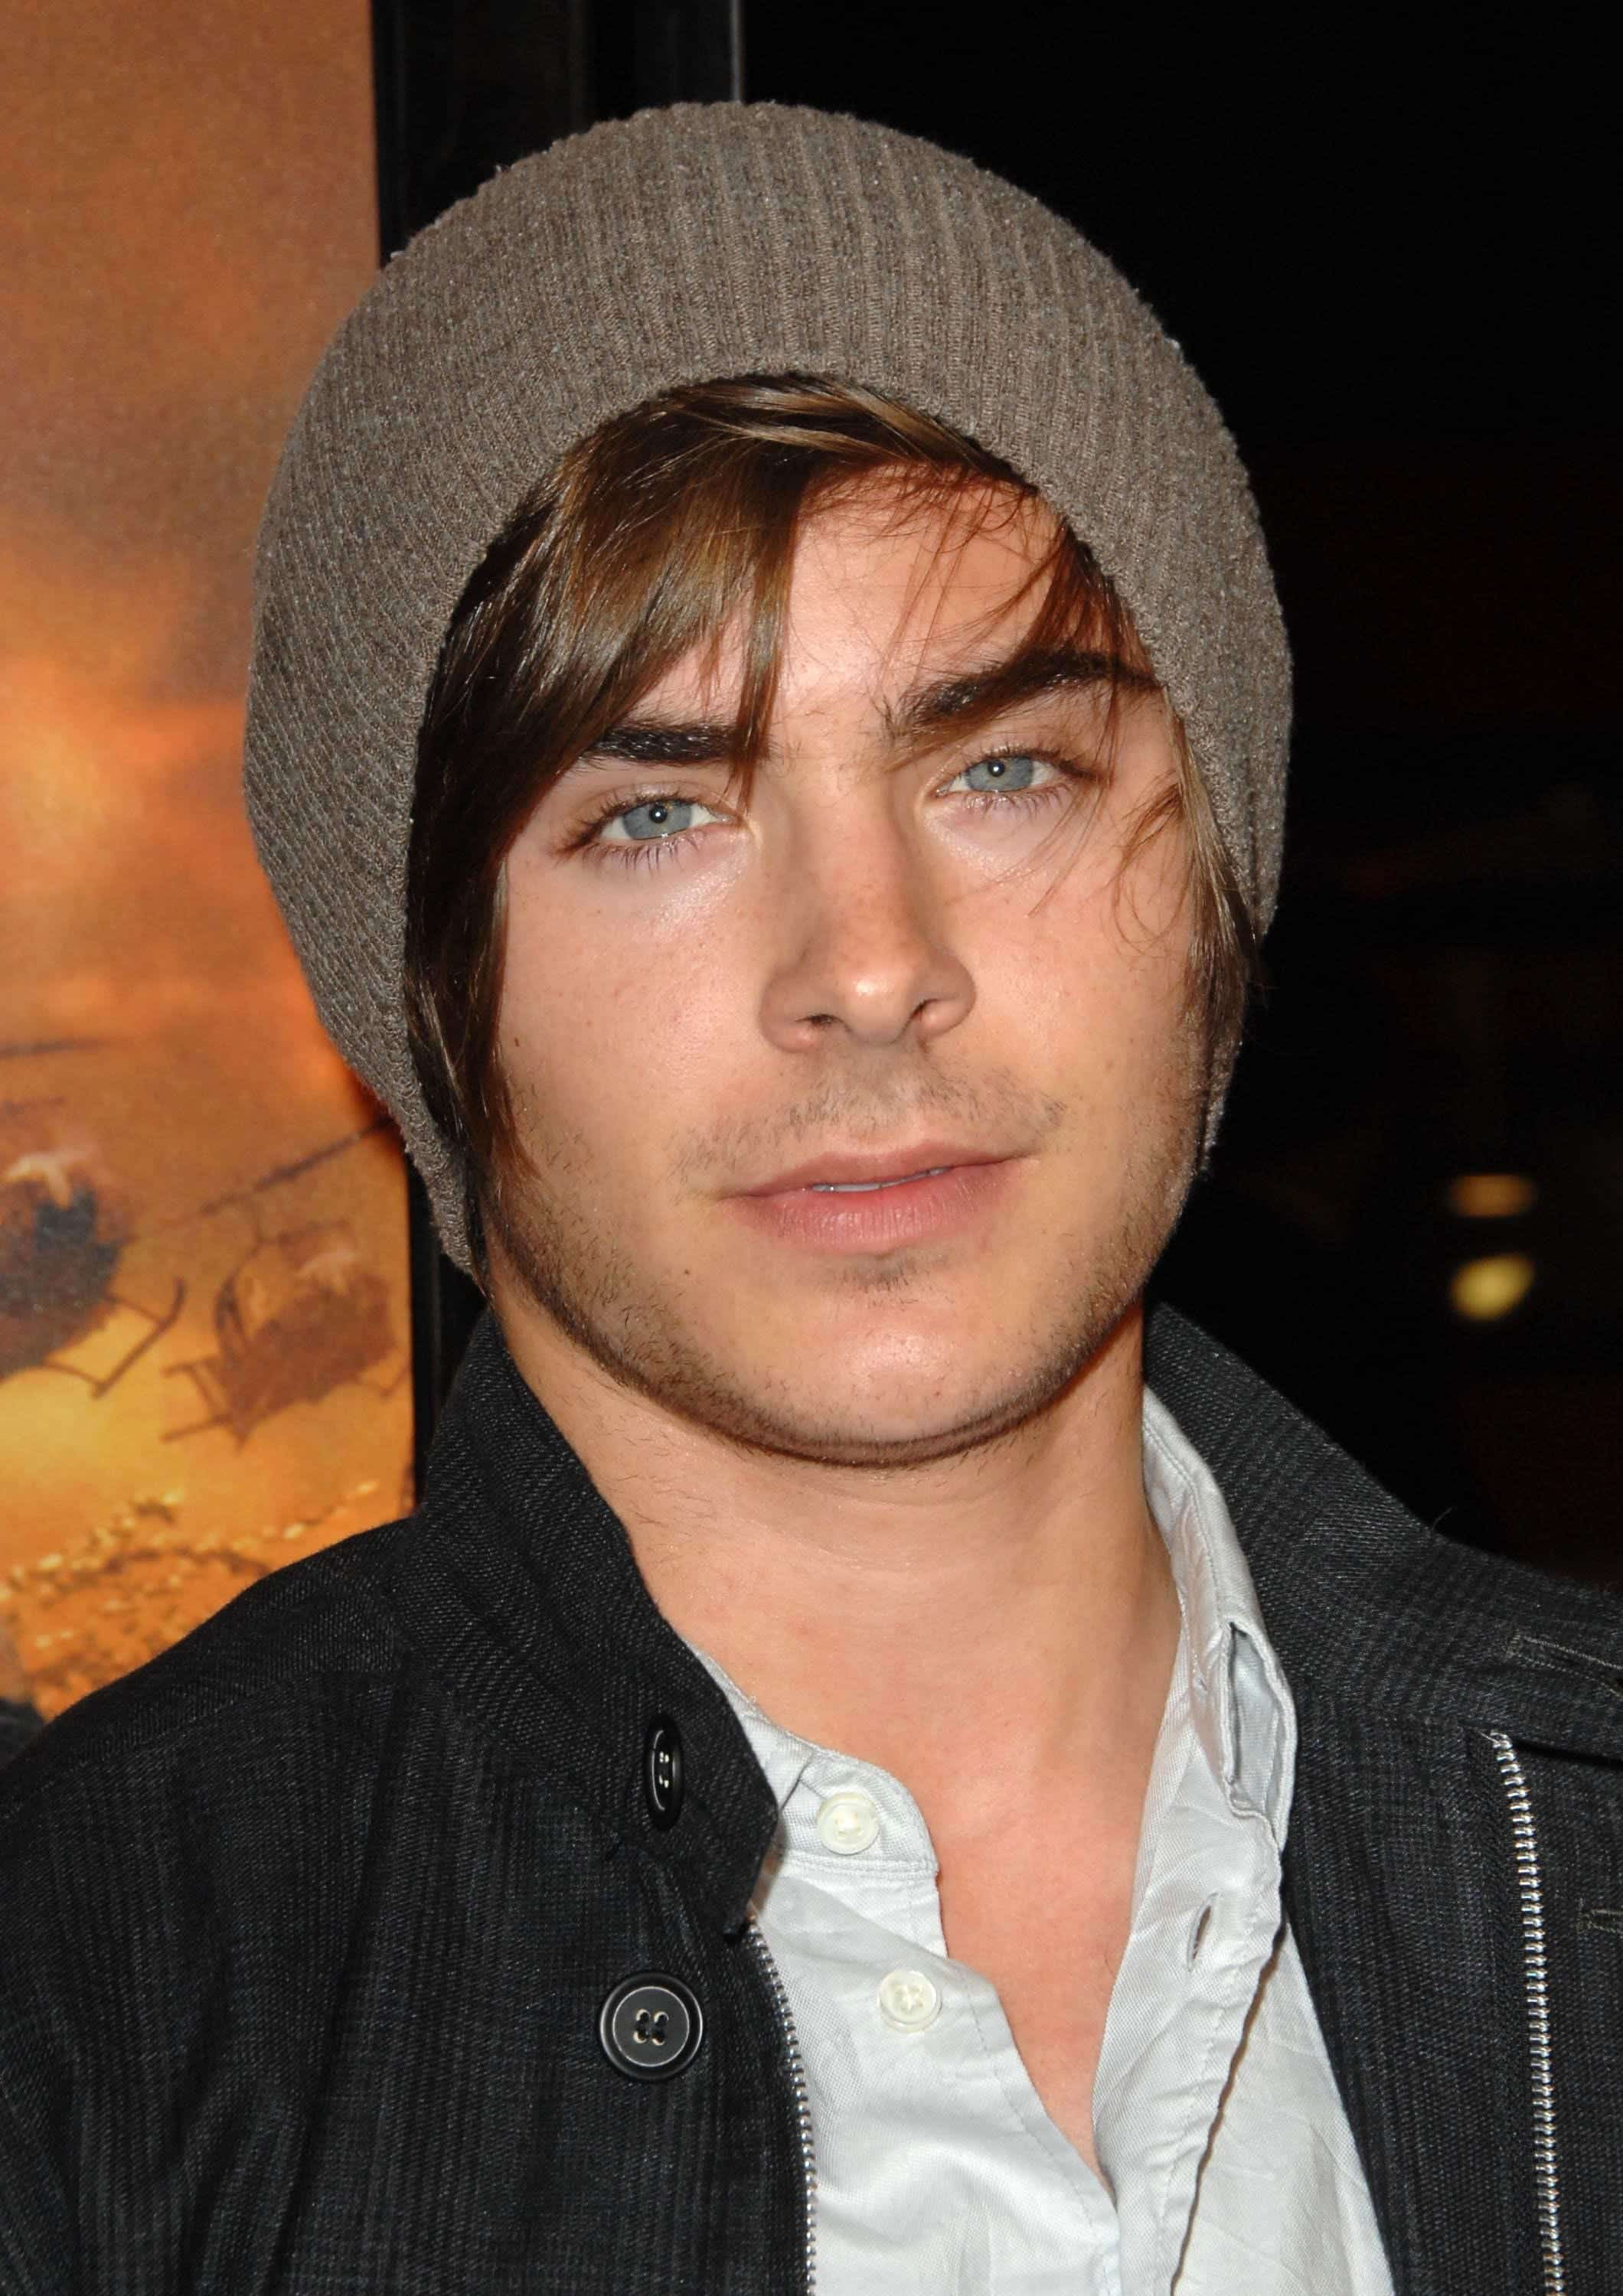 Zac Efron with a stylish outfit and a beanie bonnet covering his side-swept hairstyle. The photo was taken on March 2, 2009 at the Grauman's Chinese Theatre in Los Angeles, California.